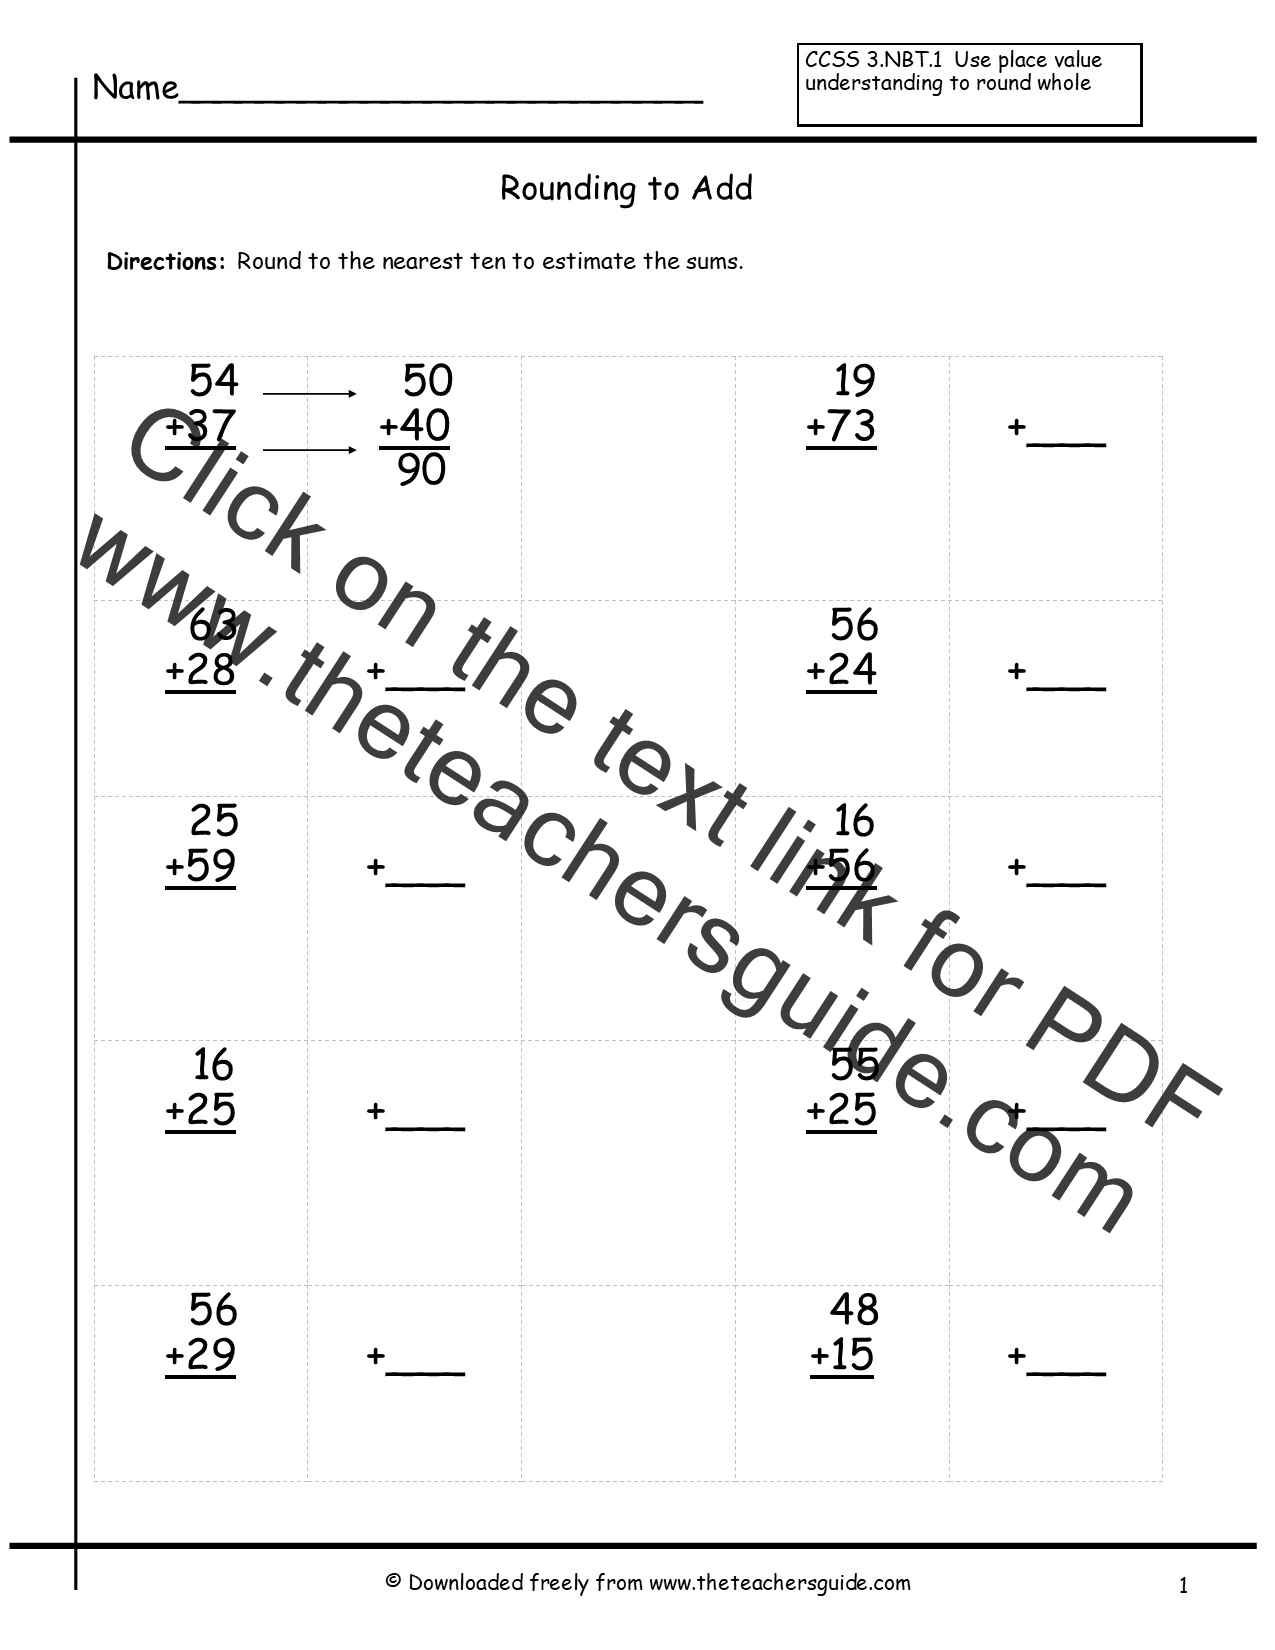 Rounding Whole Numbers Worksheets from The Teachers Guide – Rounding and Estimating Worksheets